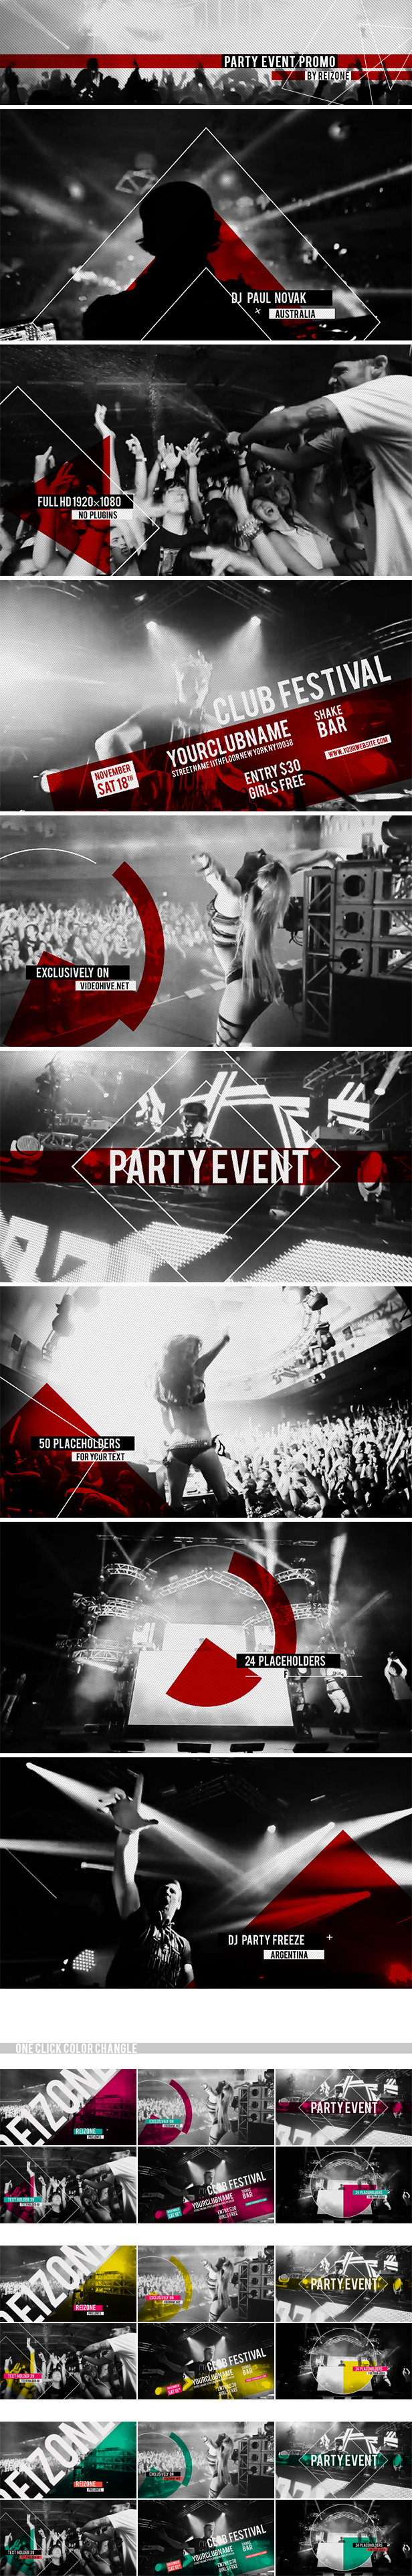 Party Event Promo